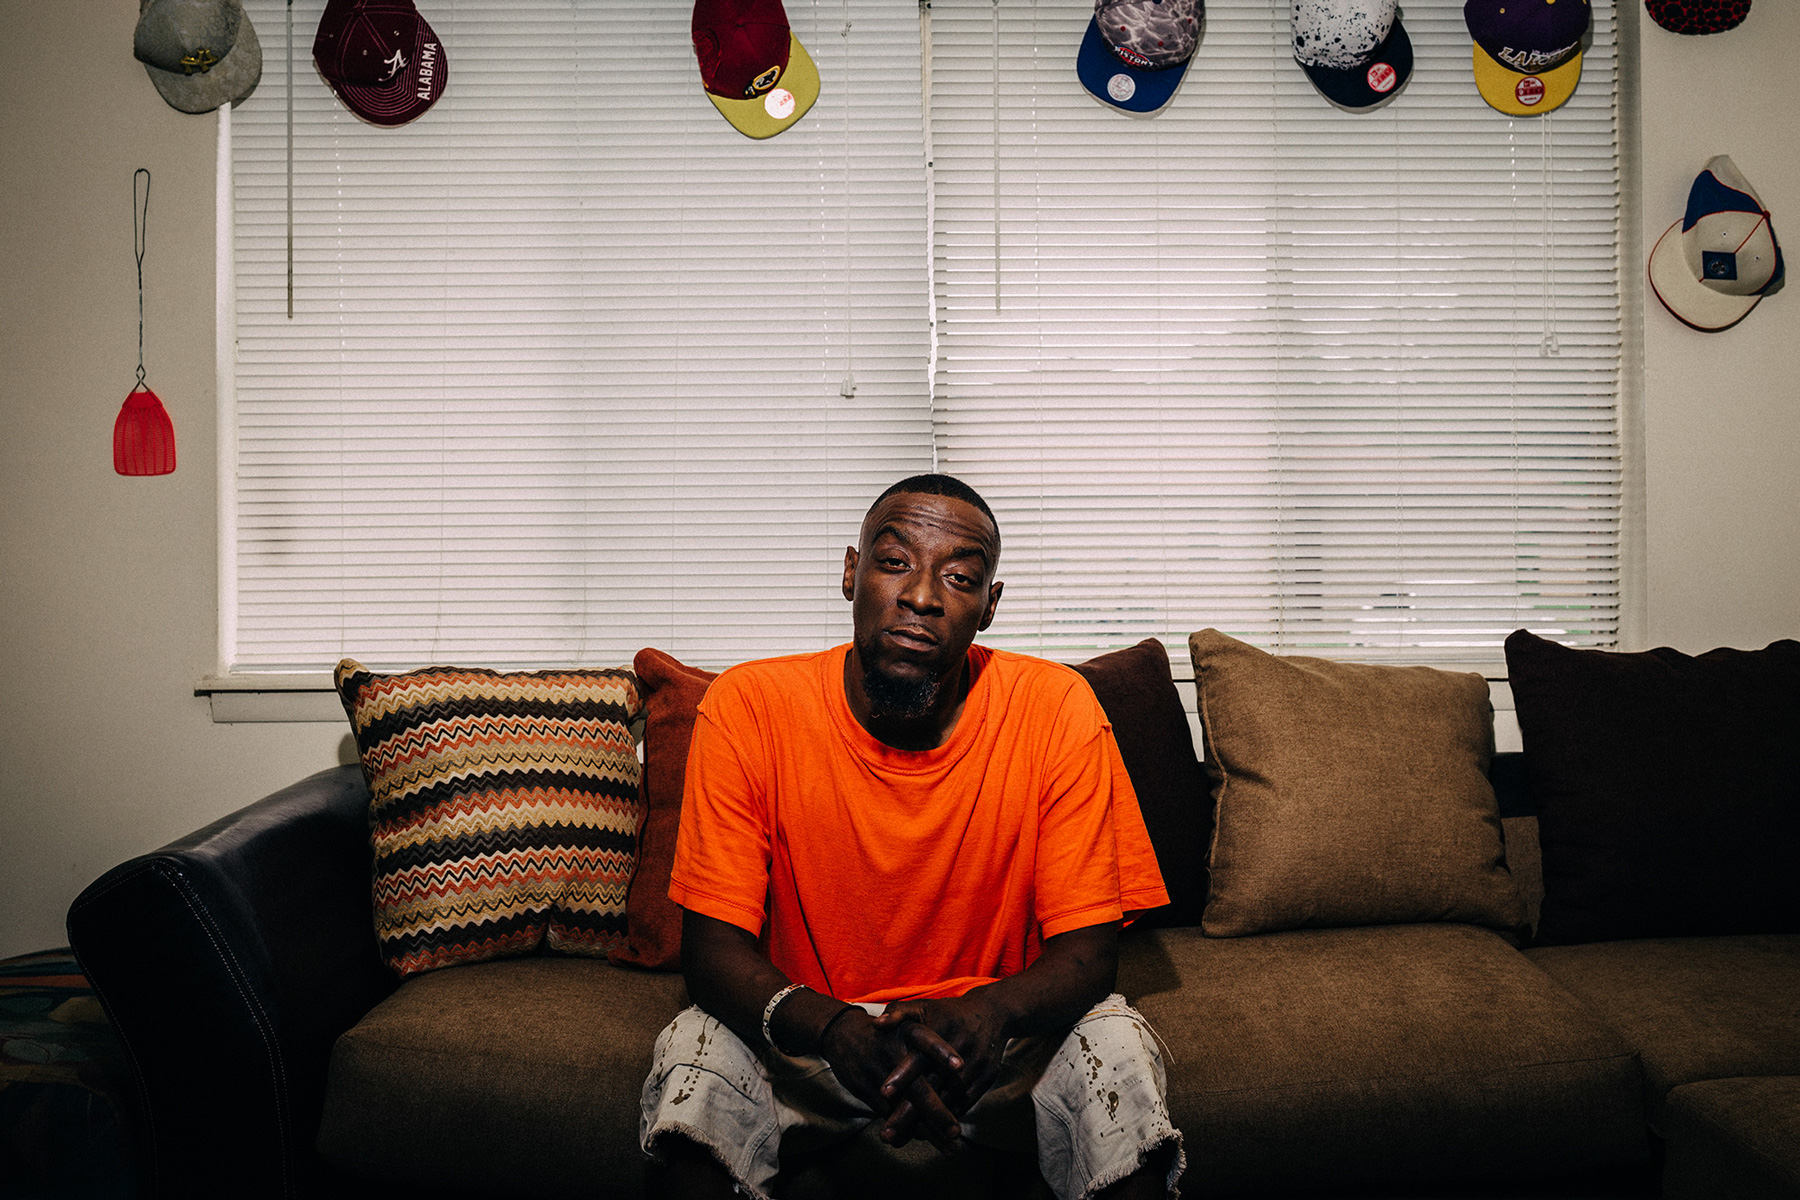 Demetrius Holmes has been living in Uniontown, Ala., for the past three years and has been hospitalized more than 20 times for stomach-related issues. He suspects the town's drinking water may be the cause. (Michael M. Santiago/News21)